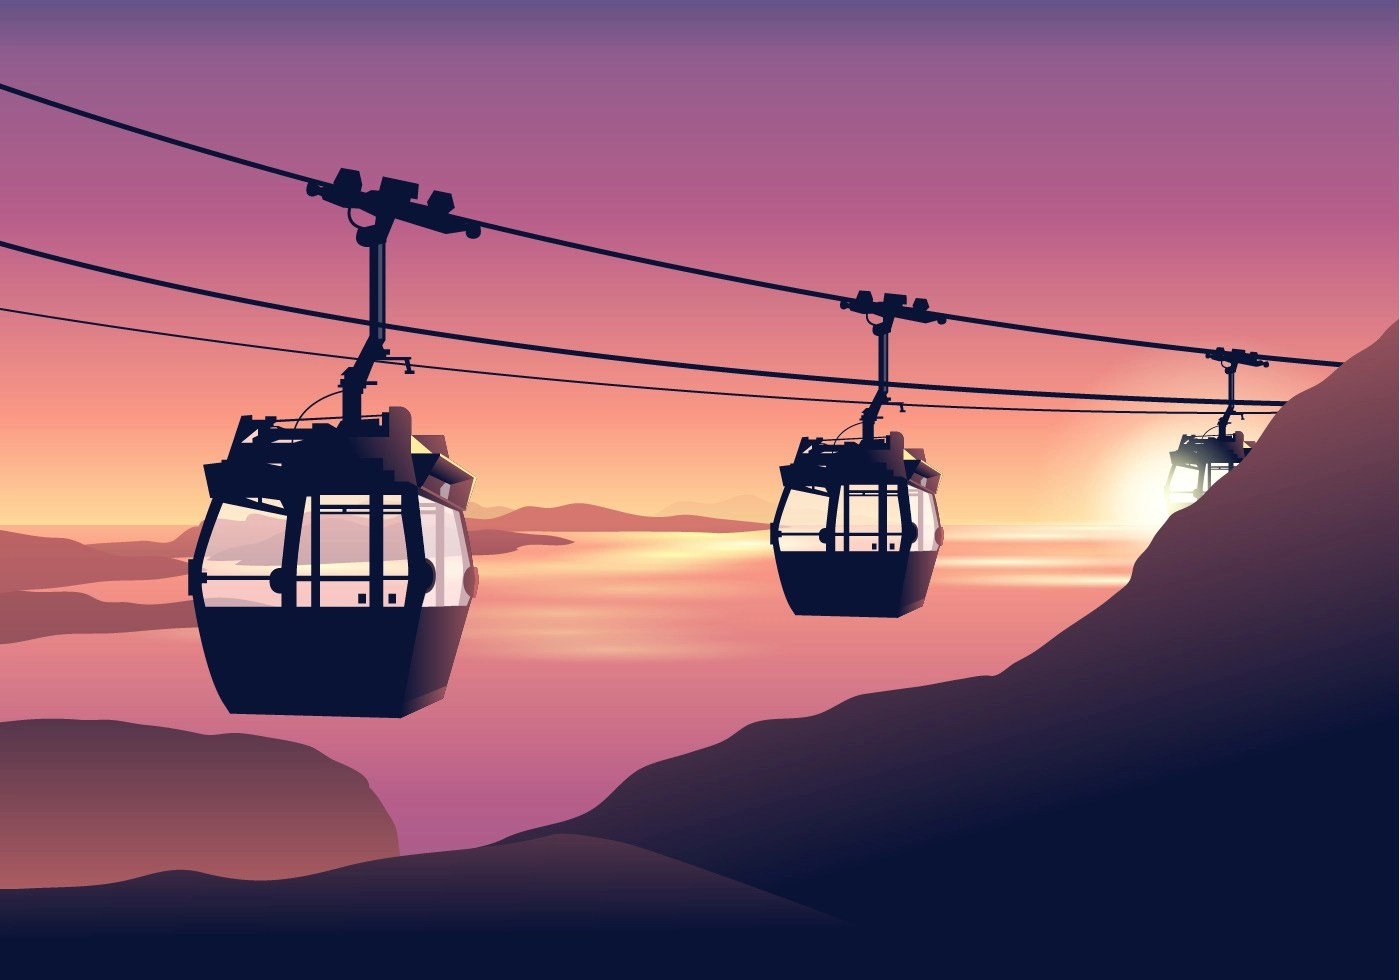 Free Falling Snow Wallpaper Download Cable Car At Sunset Vector Download Free Vector Art